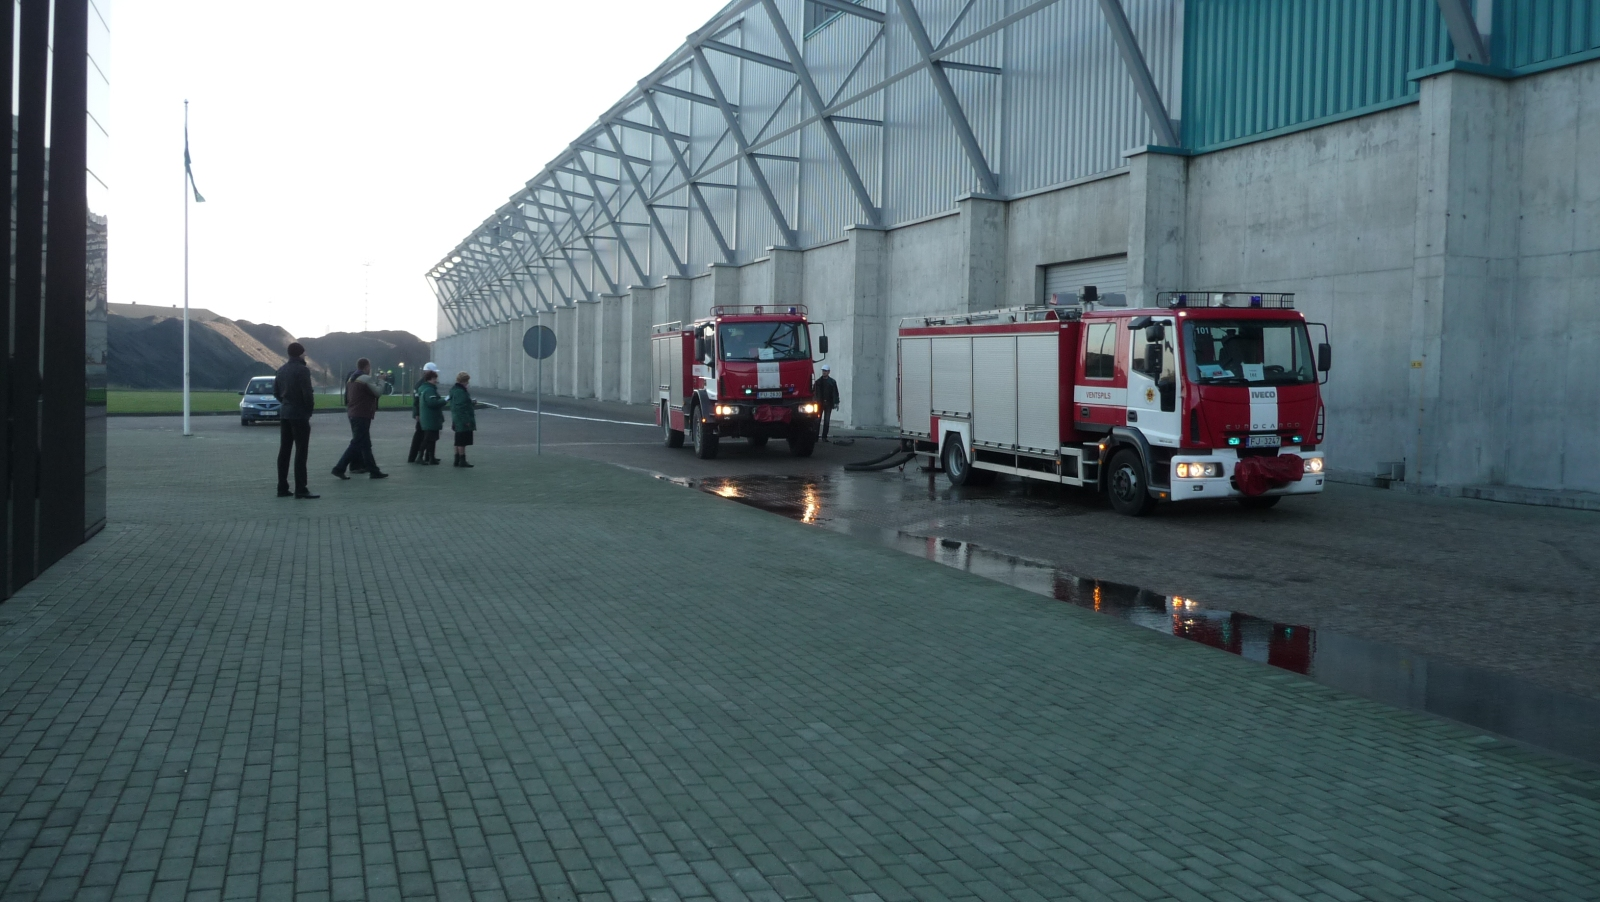 Fire drills: image 4 of 11